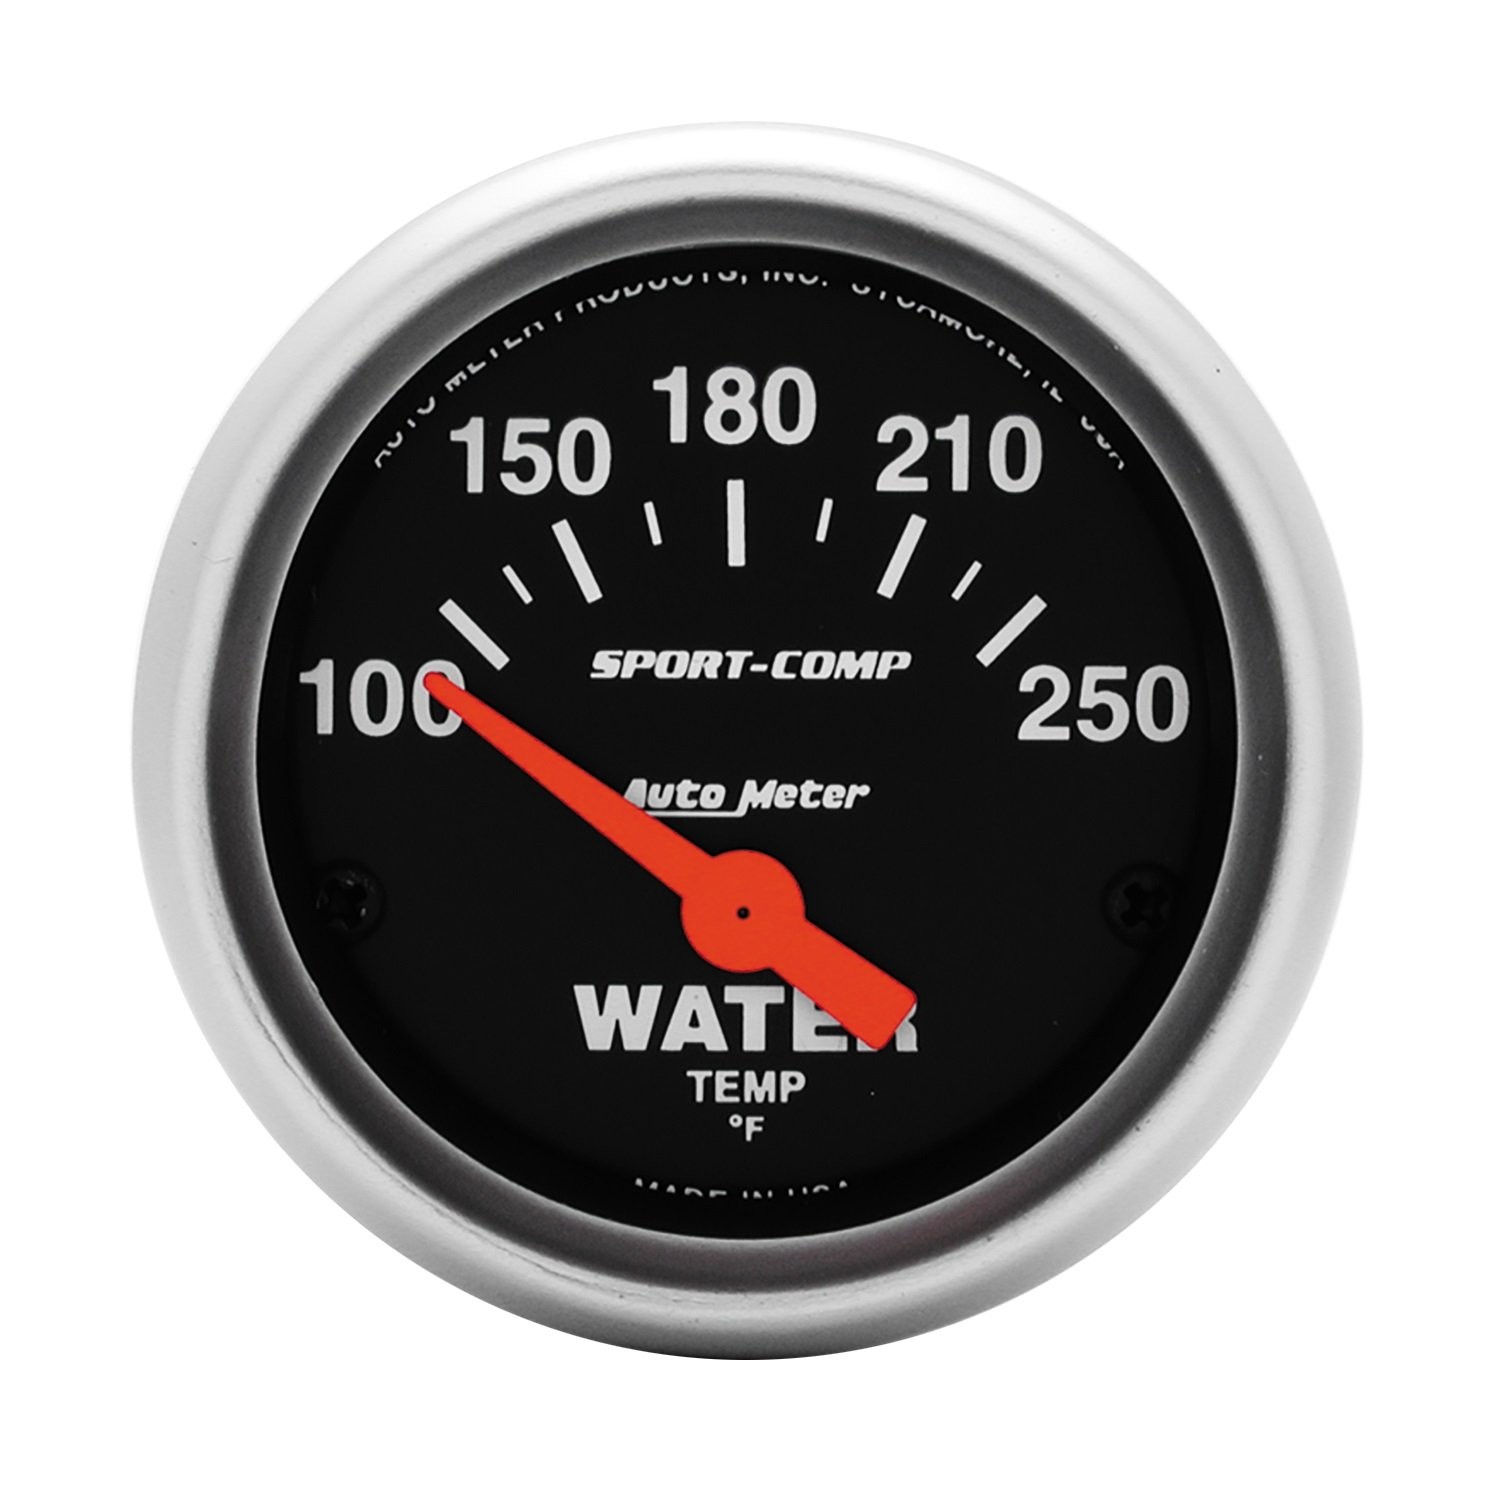 Auto Meter 3337 Sport-Comp Electric Water Temperature Gauge by Auto Meter